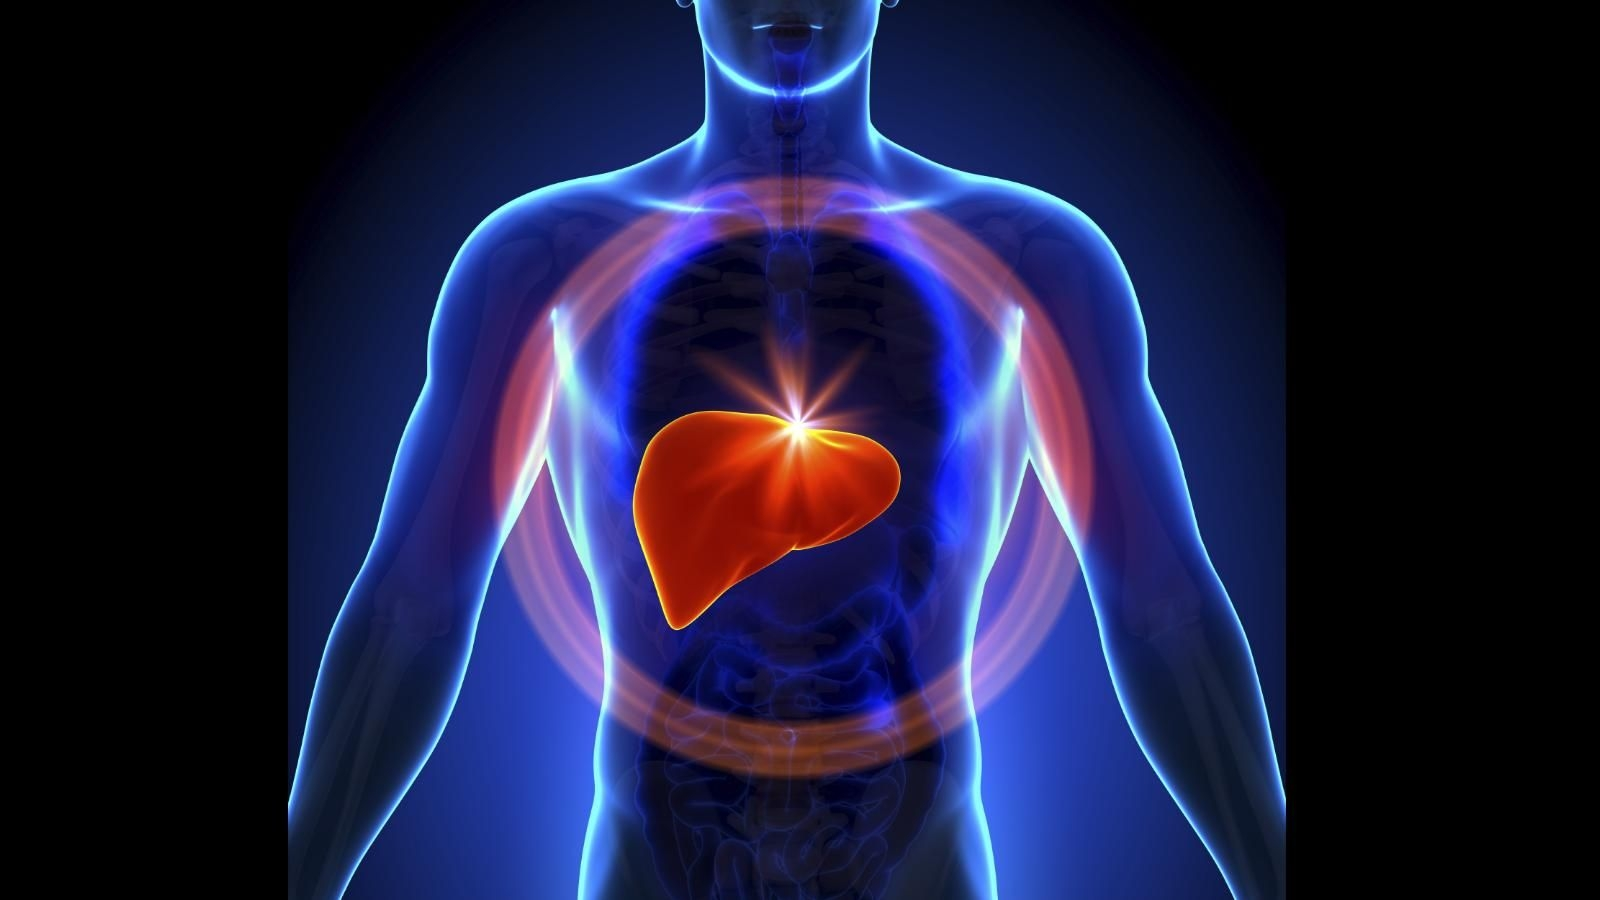 Zinc Oxide Supplements May Prevent Fat Build up in Liver: Study